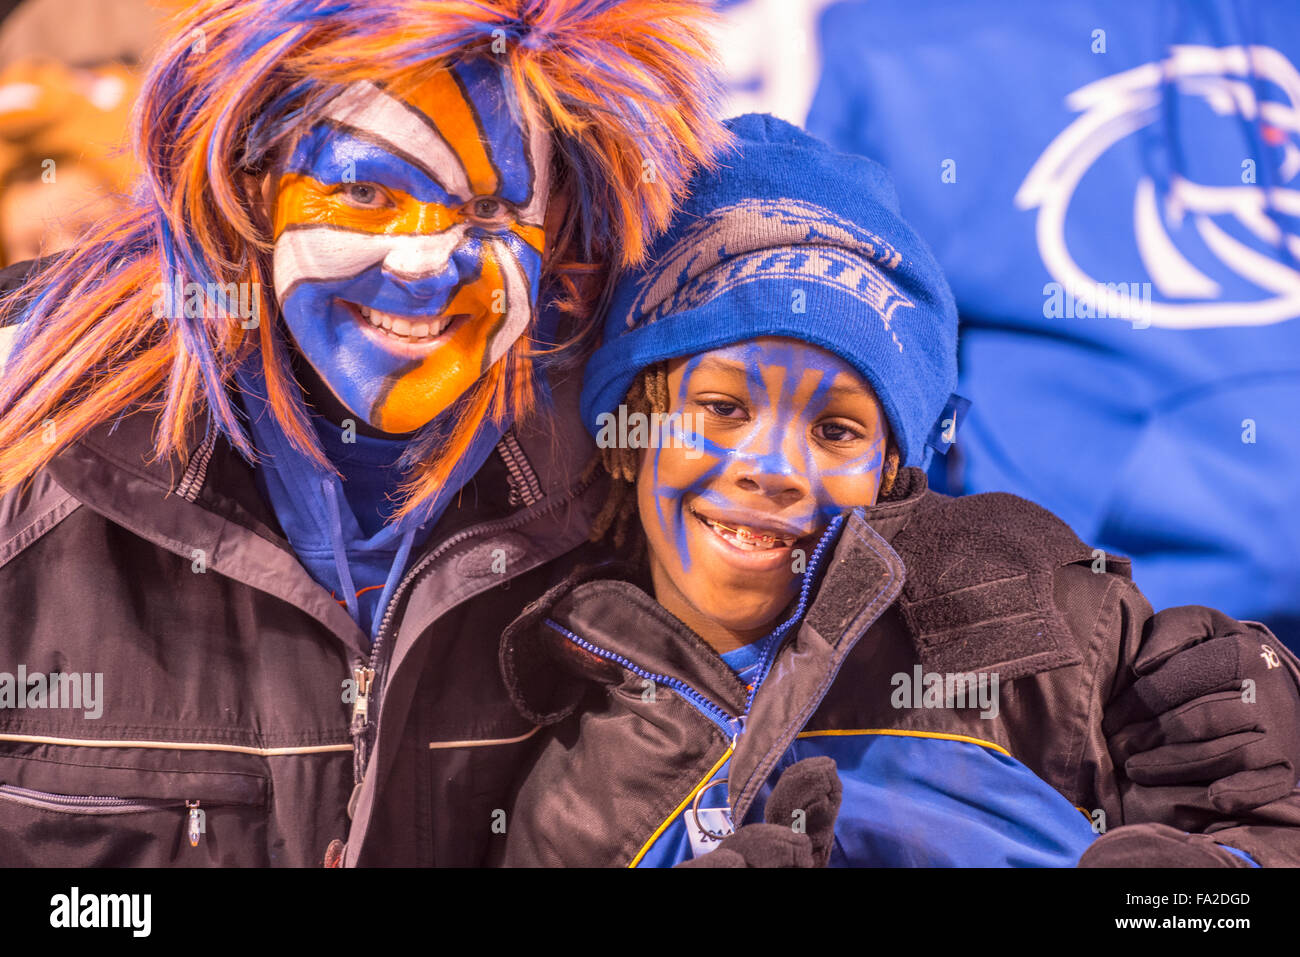 FOOTBALL FANS, Mother and Son celebrating during Bose State Football Game at Albertsons Stadium, Boise, Idaho - Stock Image